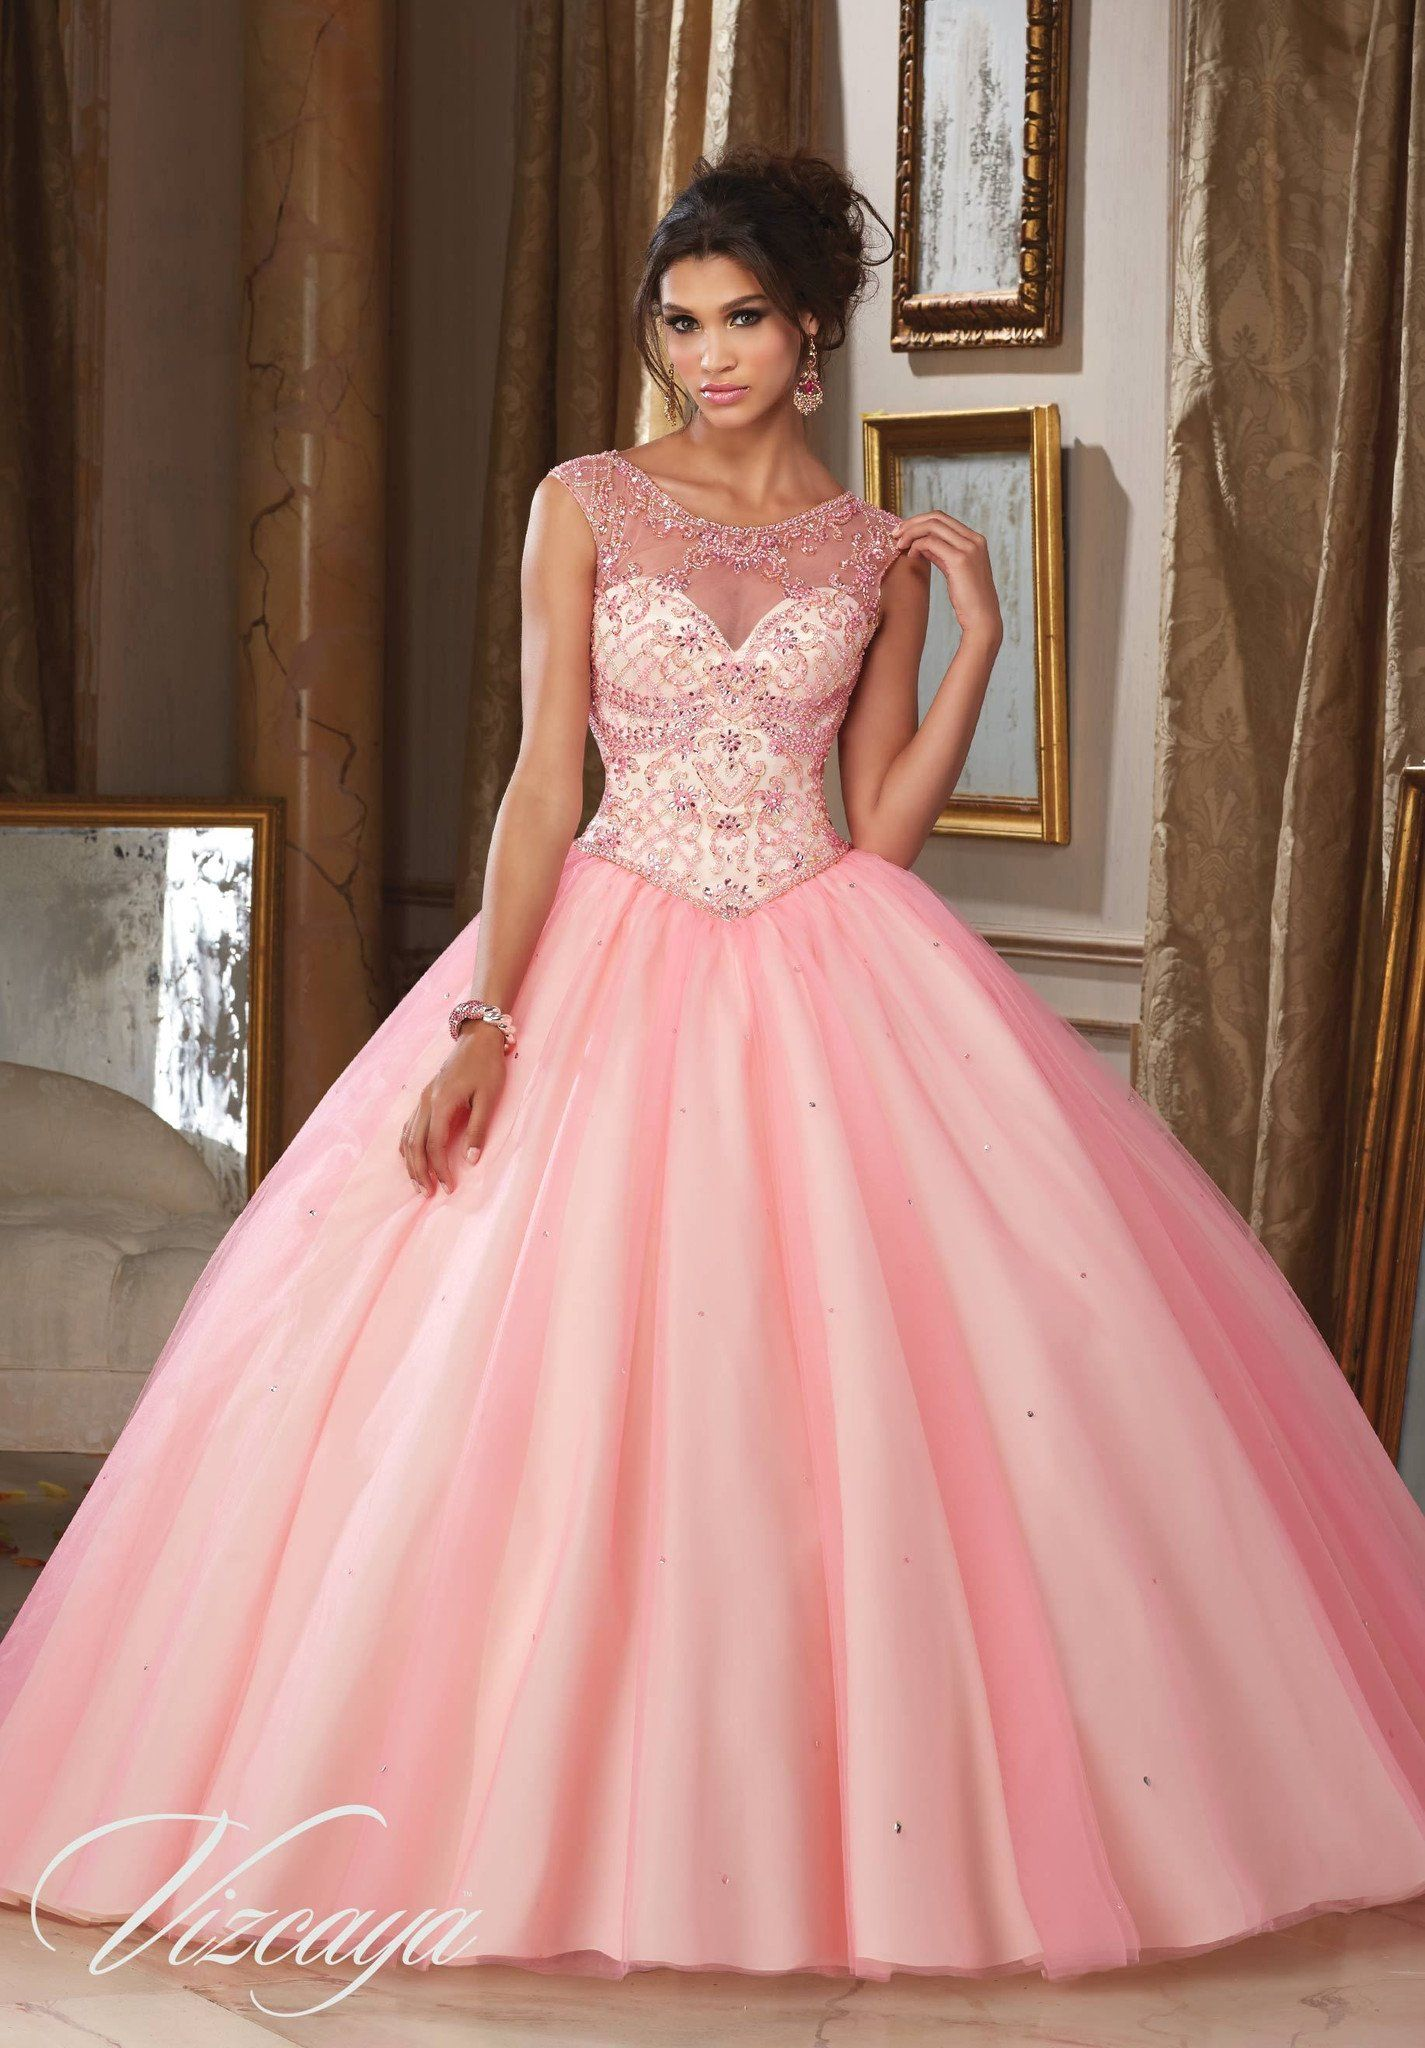 Mori Lee Quinceanera Dress 89112 | Vestidos de fiesta, Fiestas y ...